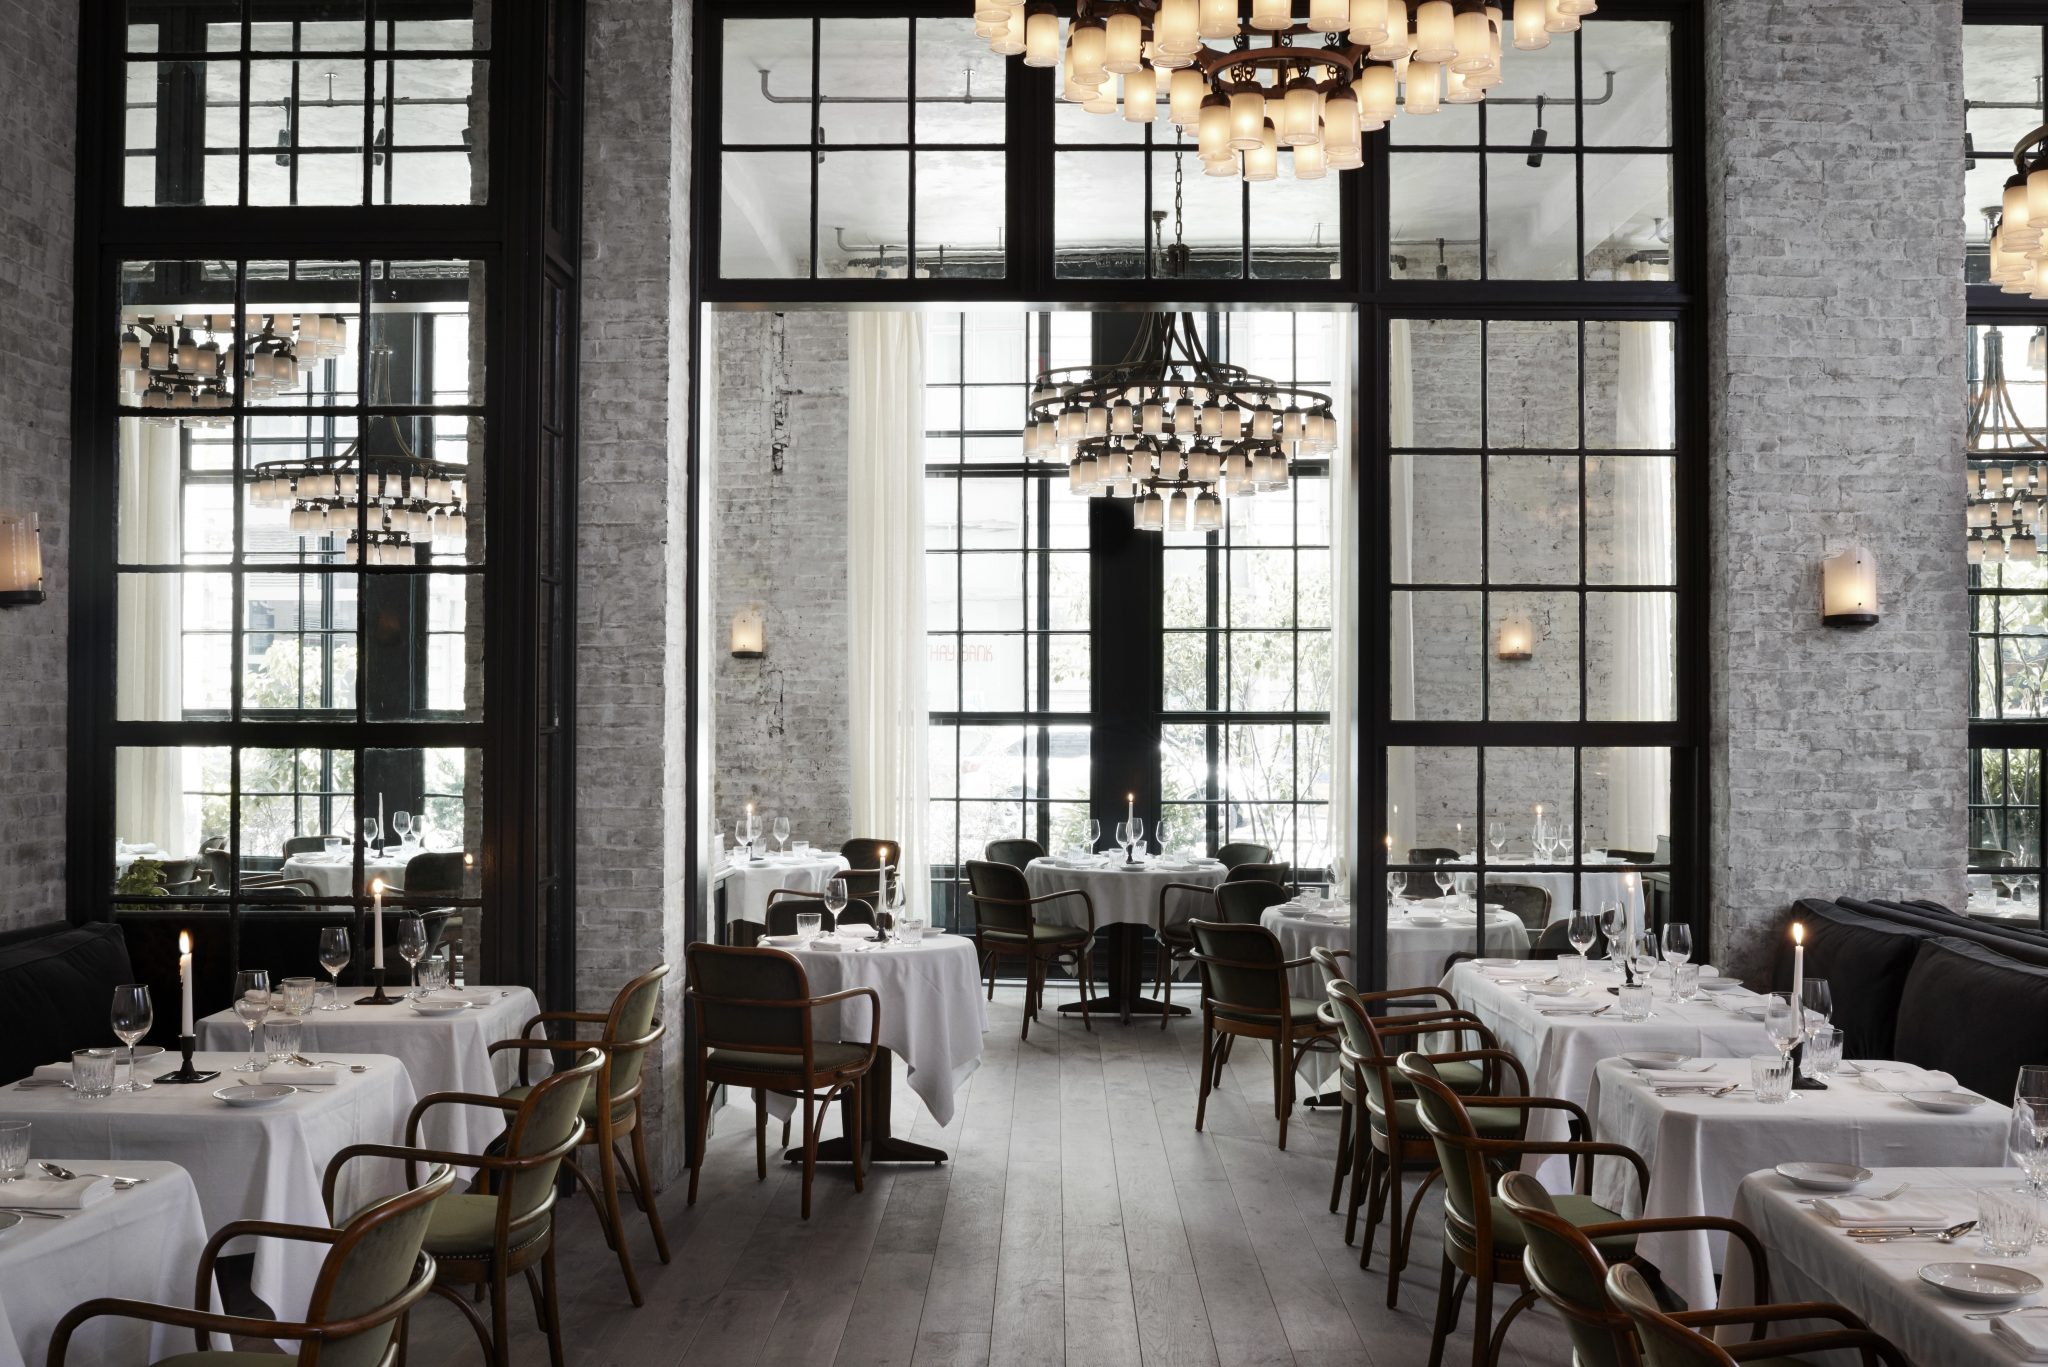 Le Coucou NYC restaurant interior design